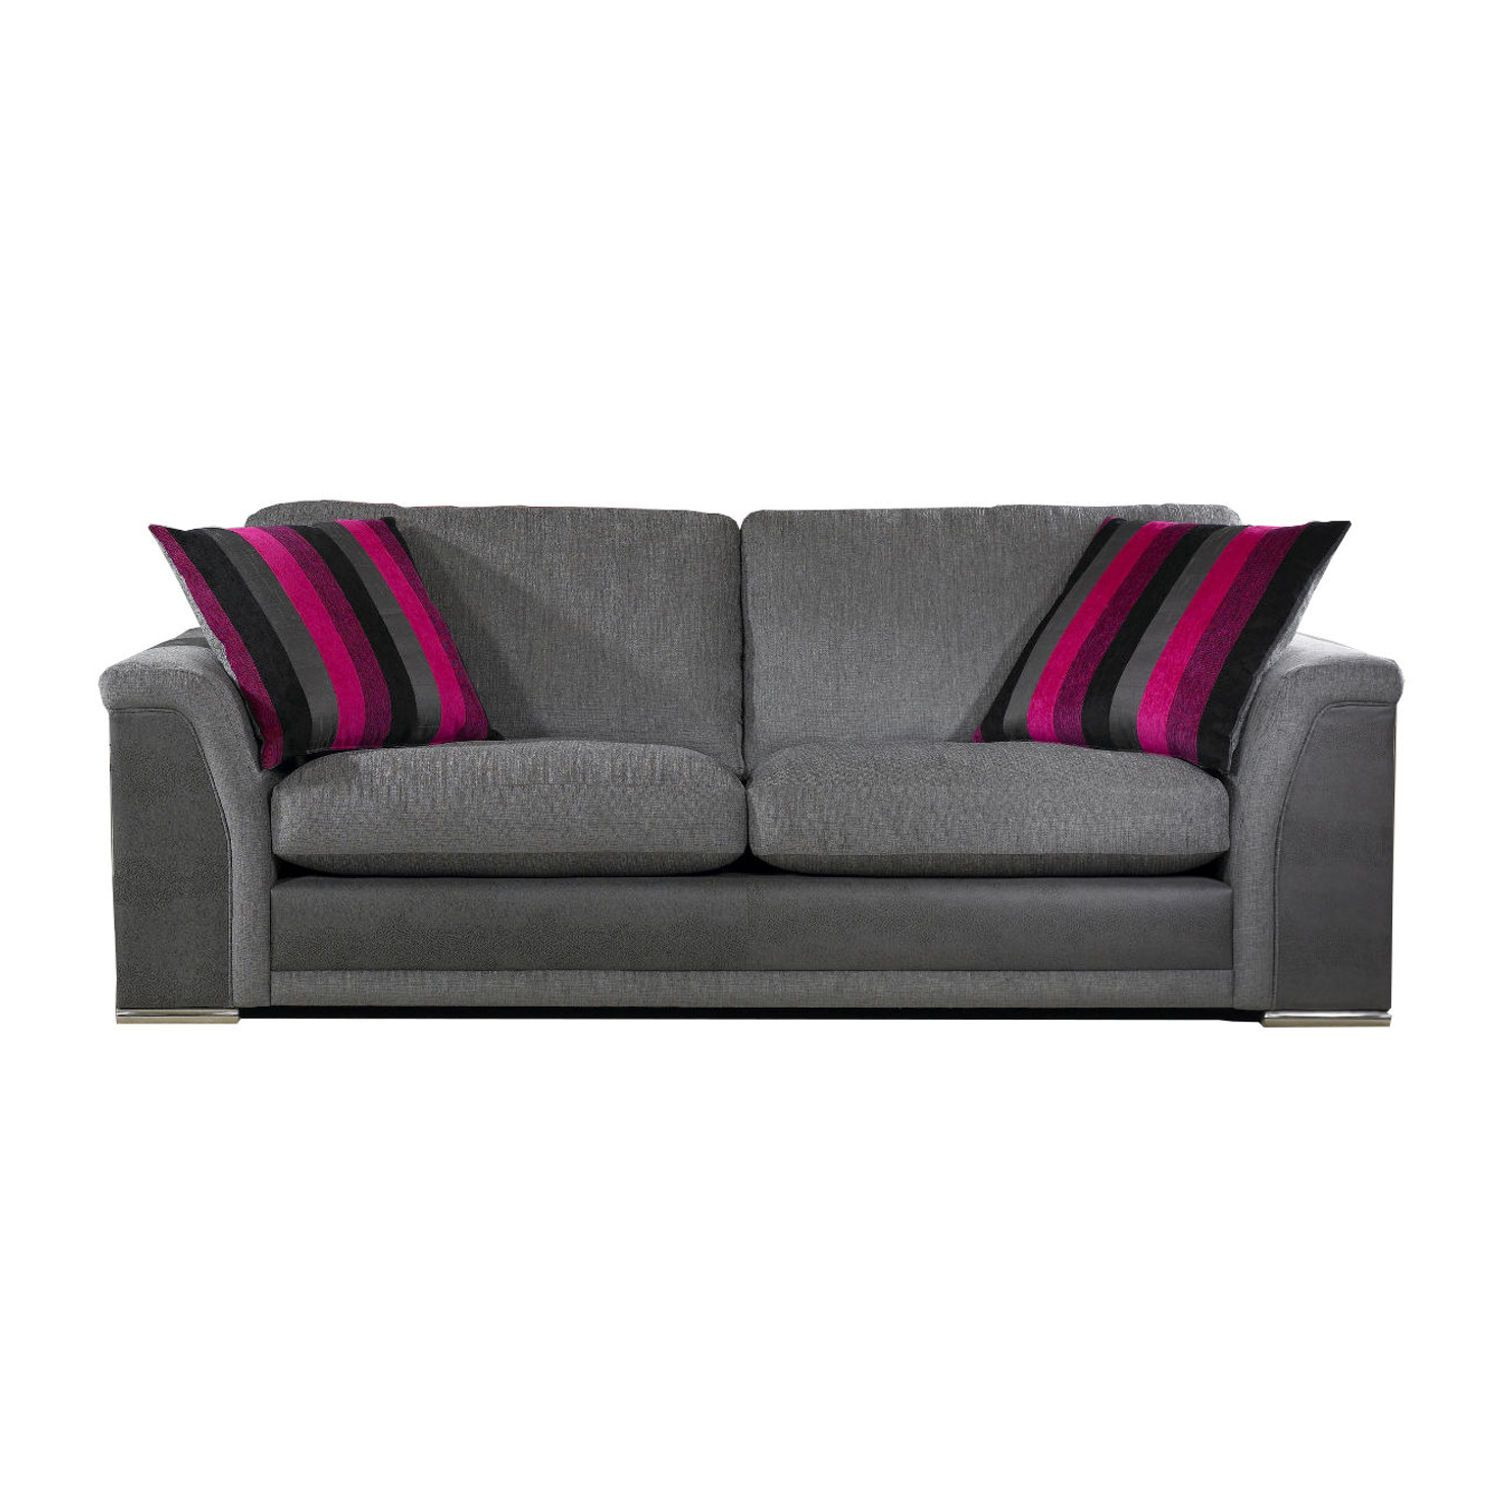 High Back Sectional Sofas It Is Better to Opt for Leather or